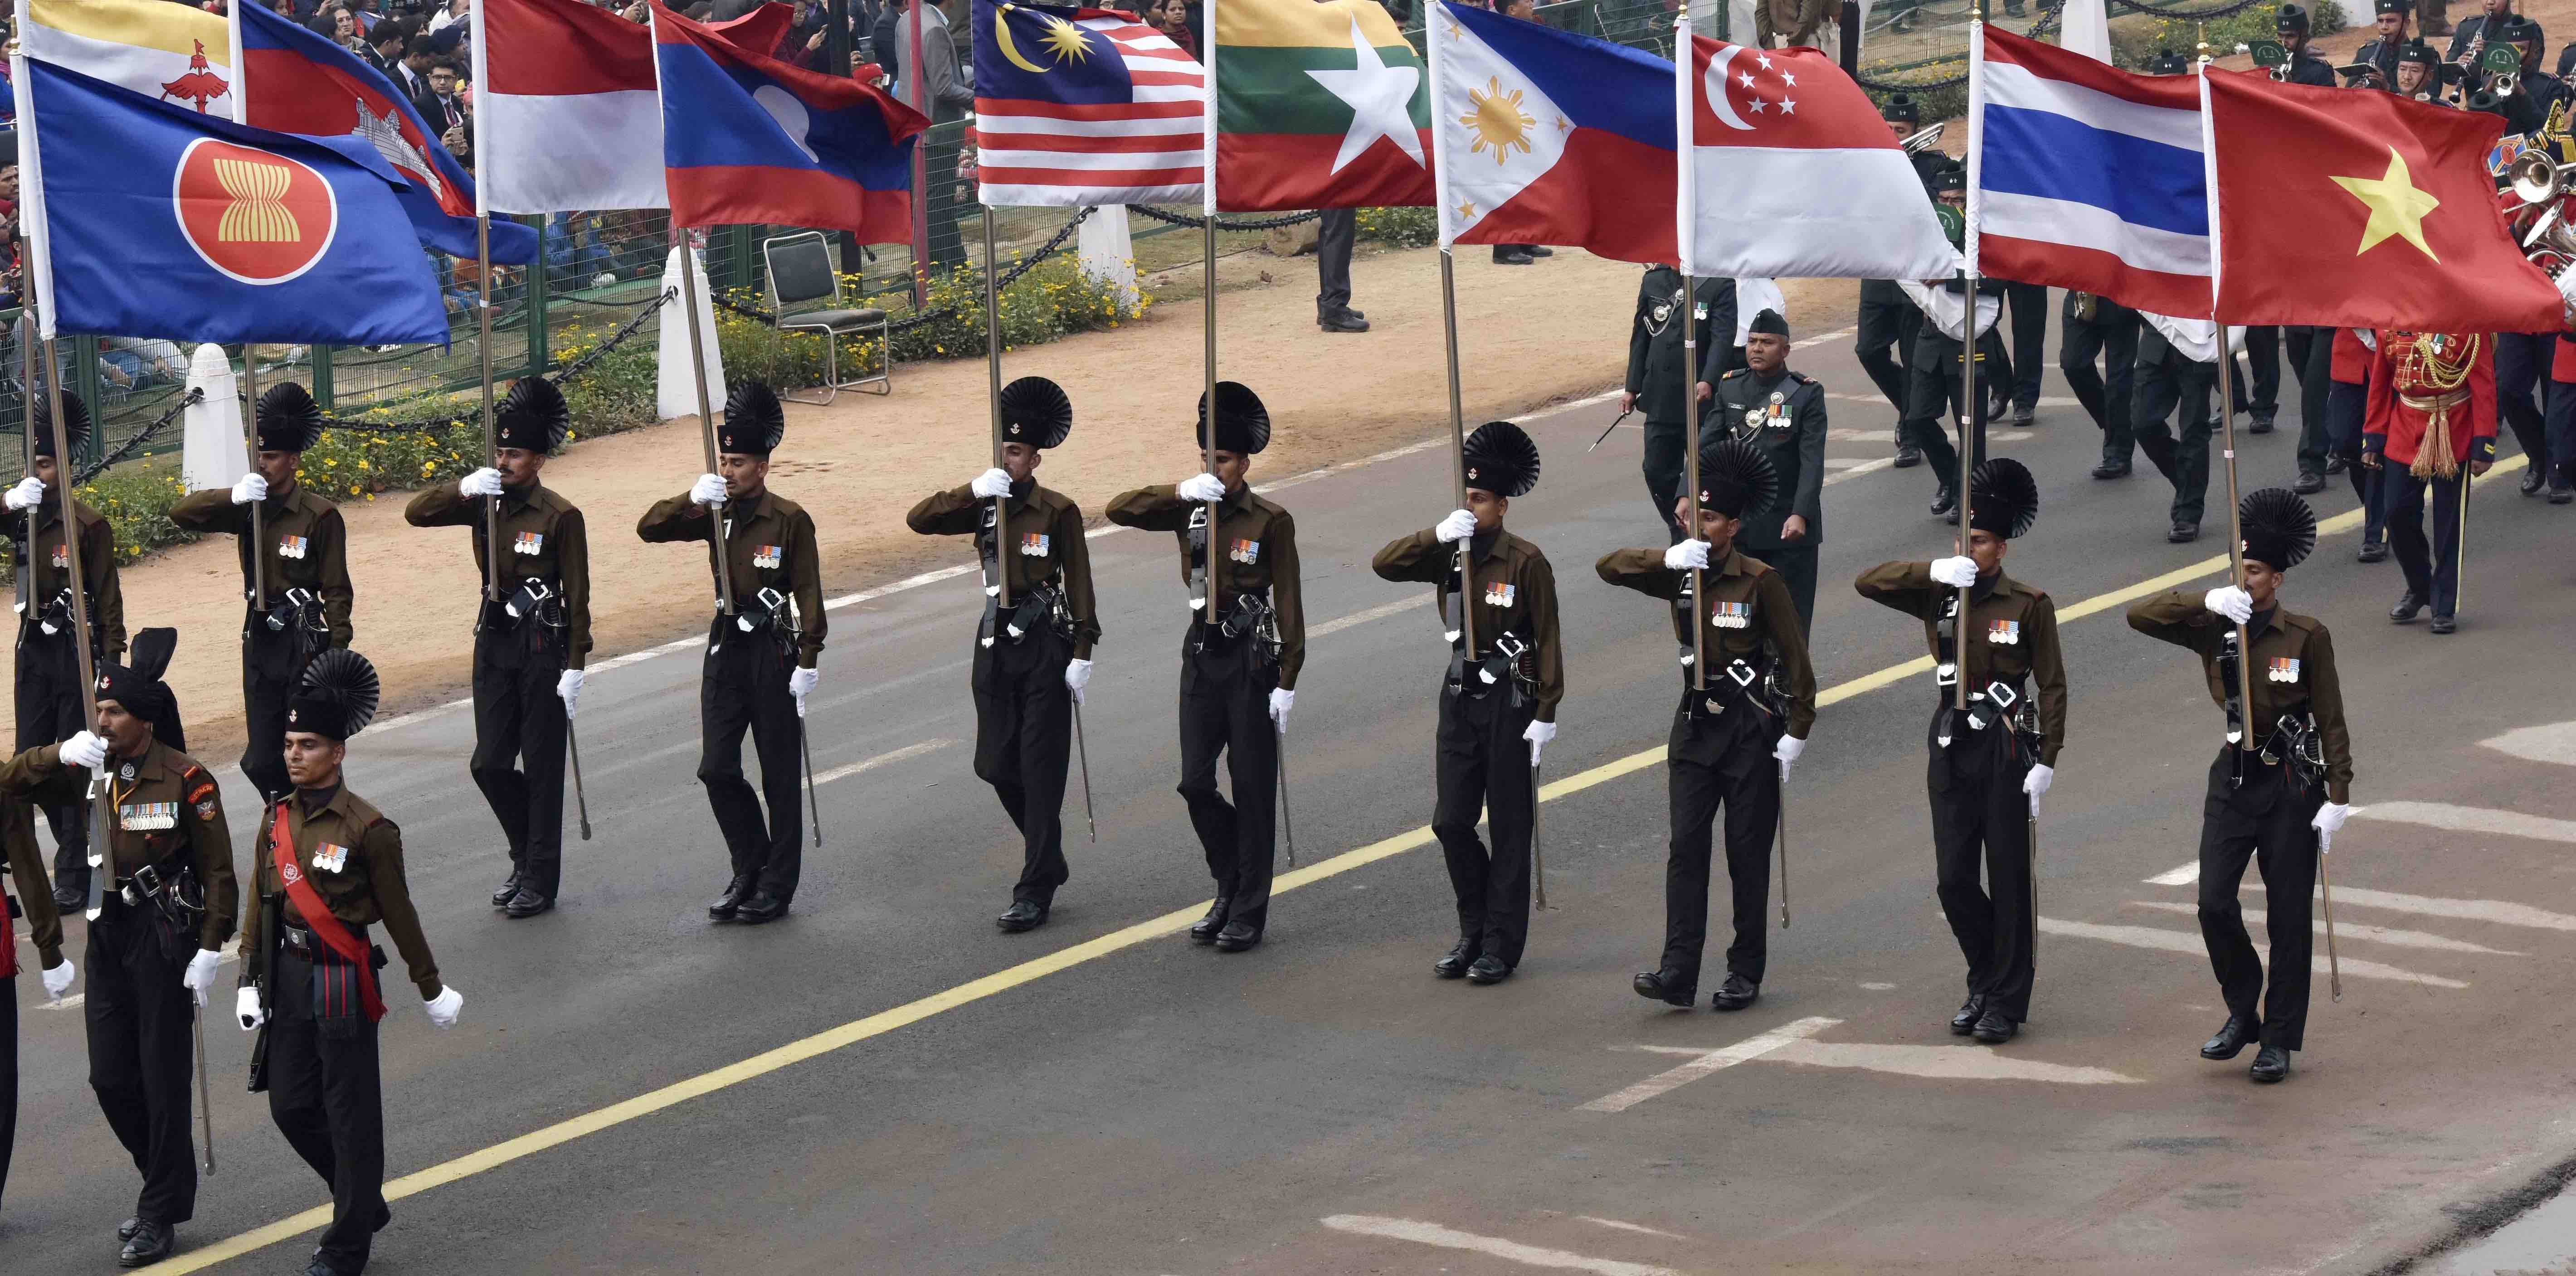 ASEAN flags on parade before the India-ASEAN summit in January (Photo: Mohd Zakir/Getty)